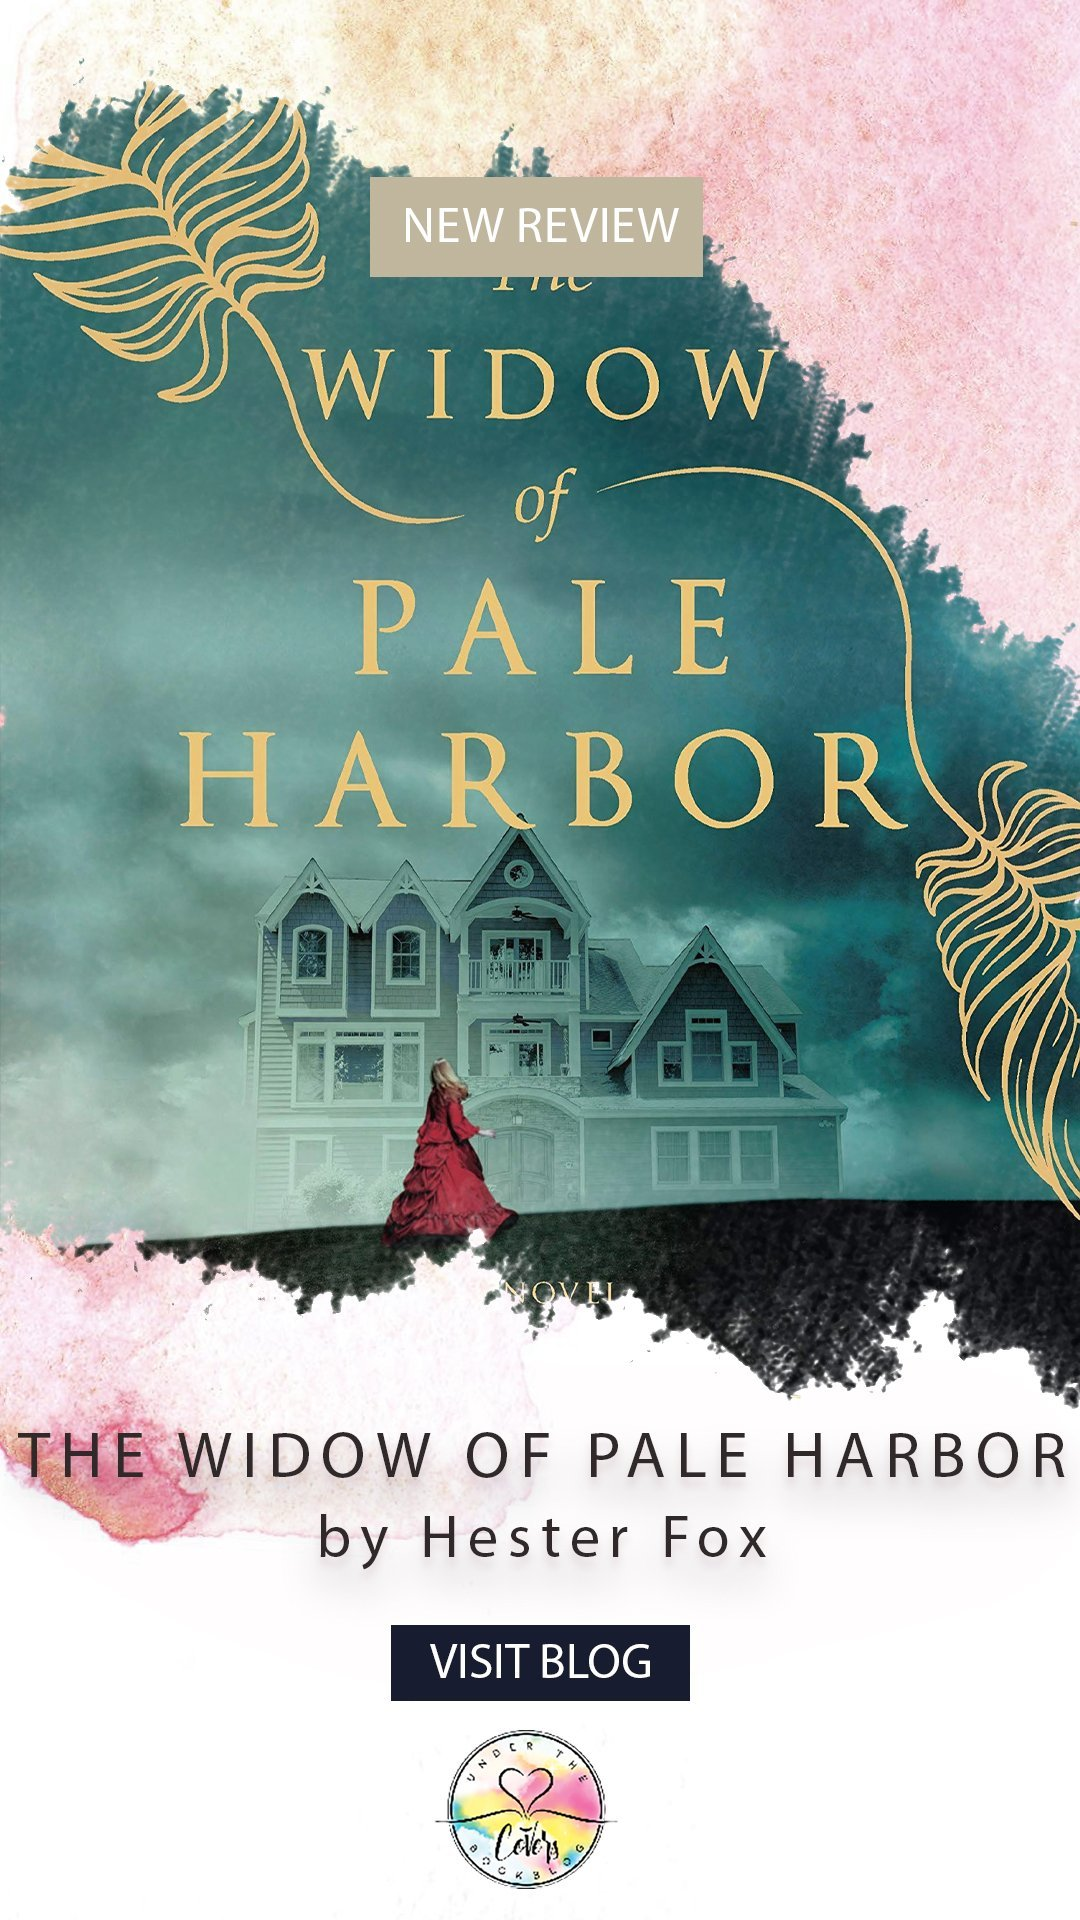 ARC Review: The Widow of Pale Harbor by Hester Fox